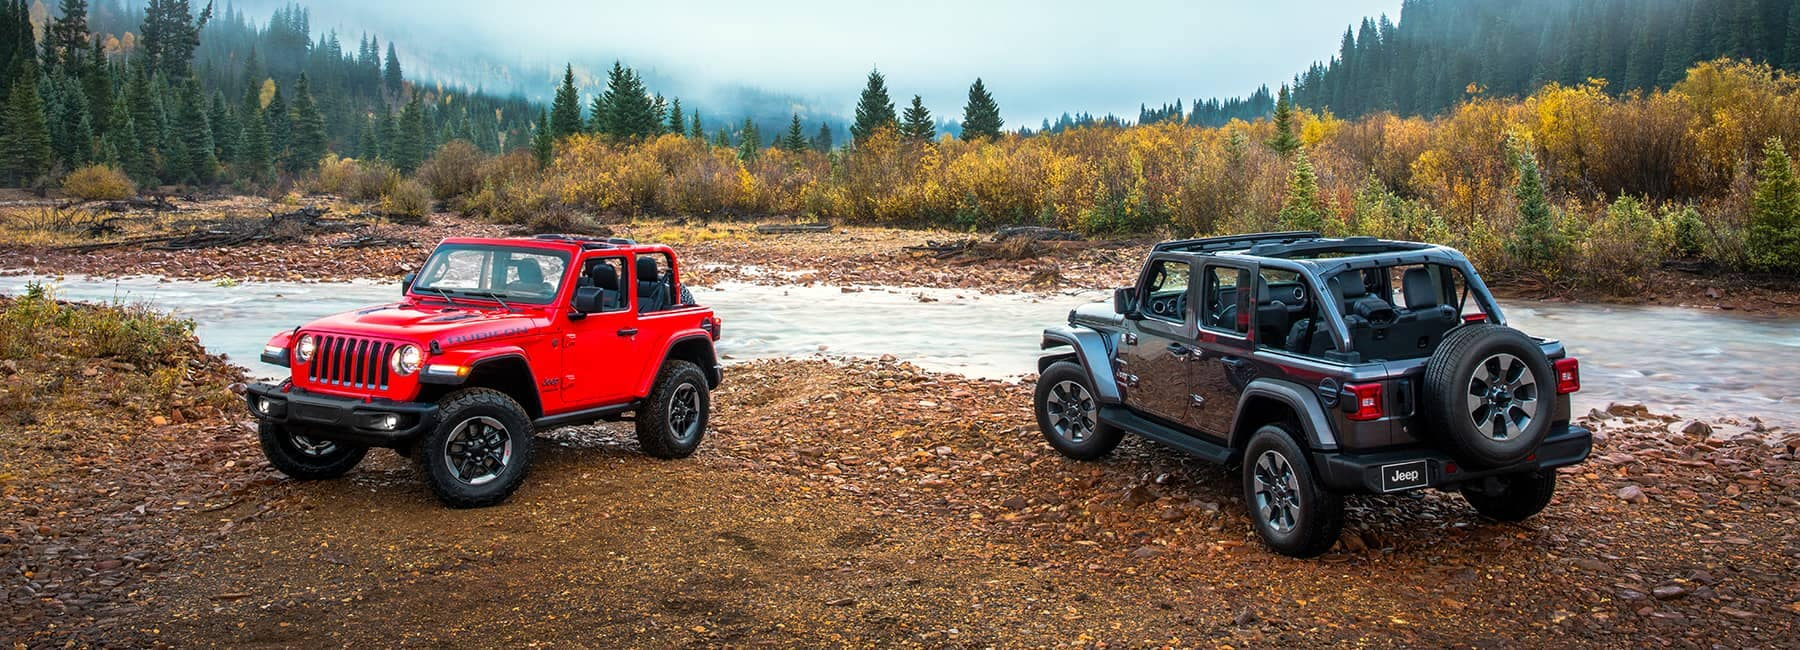 2018 Jeep Wrangler Review Mansfield MA